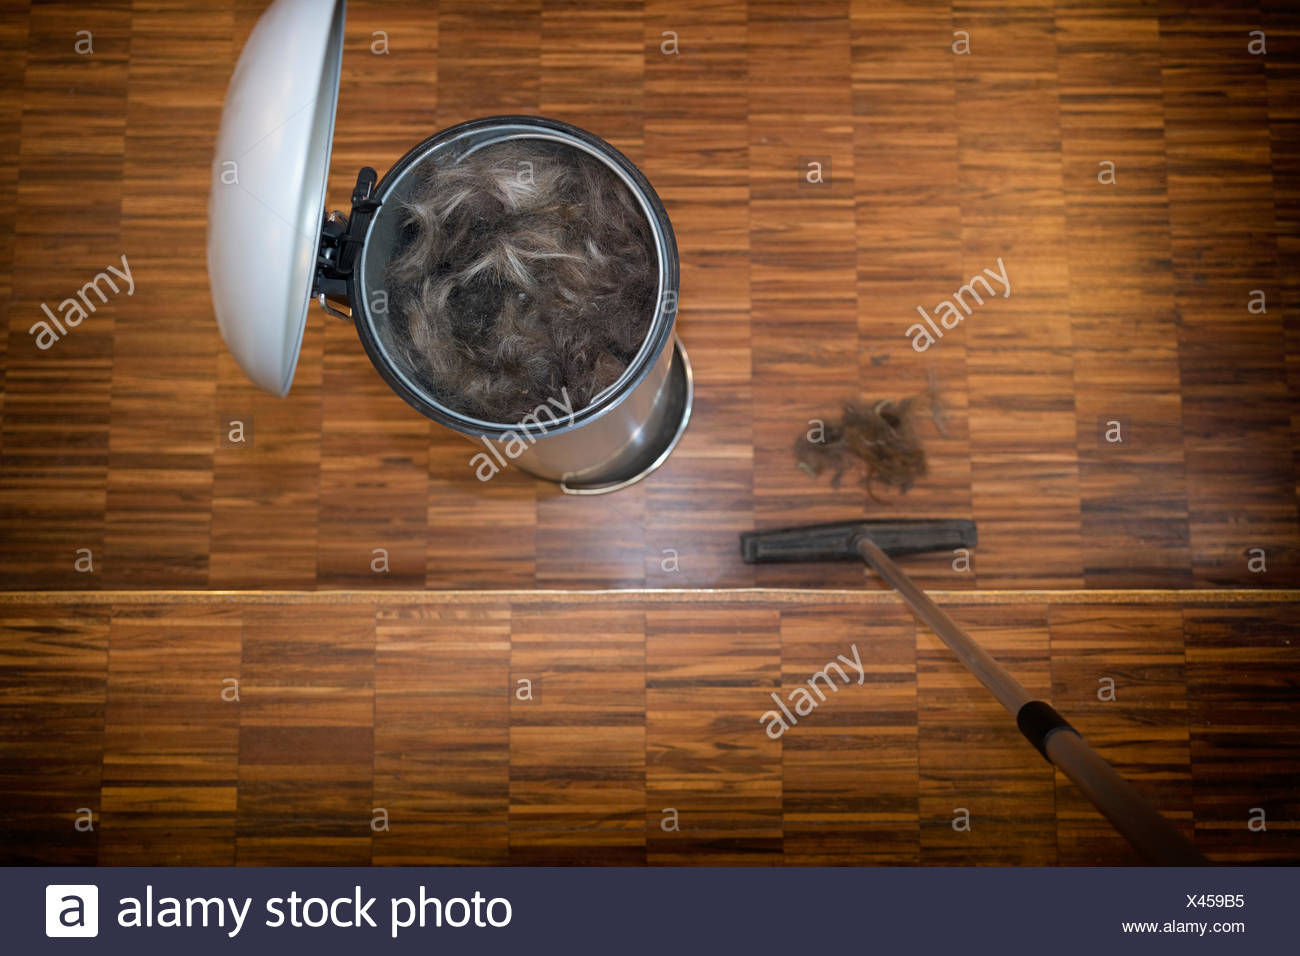 Hair clippings bin haircut off haircut garbage - Stock Image